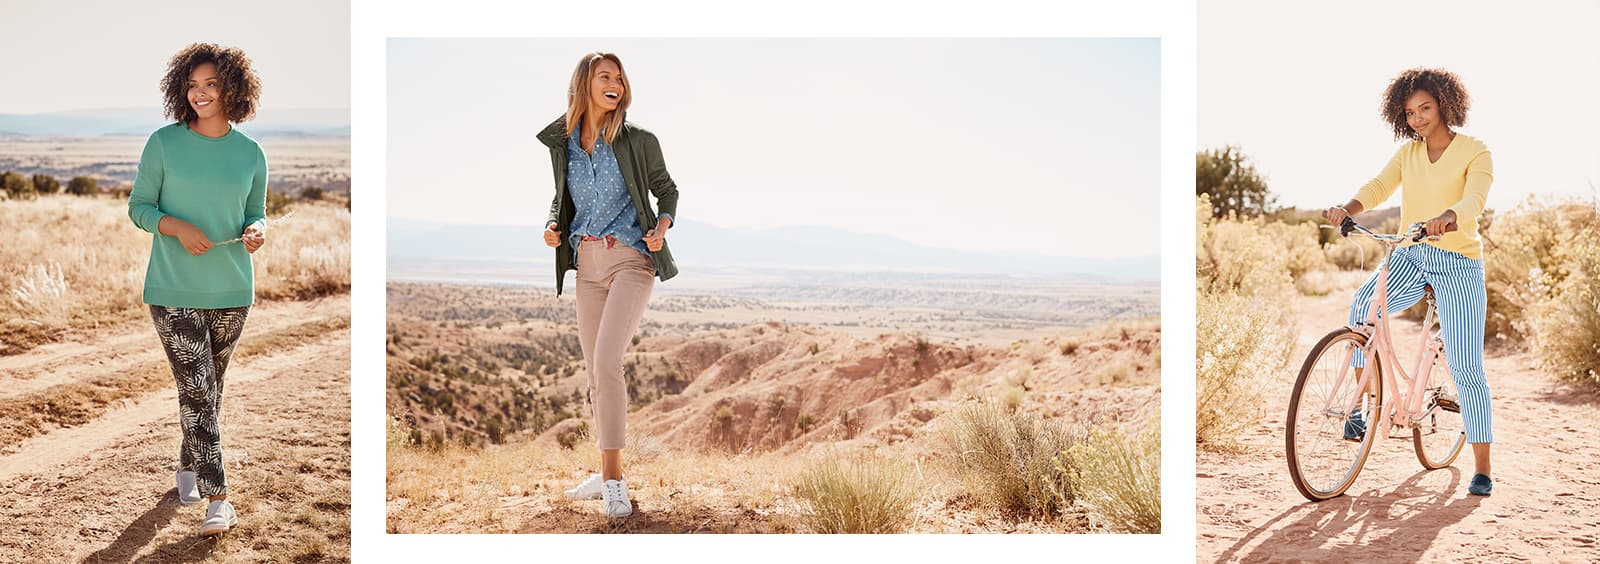 The 7 Most Comfortable Pants for Women | Lands' End